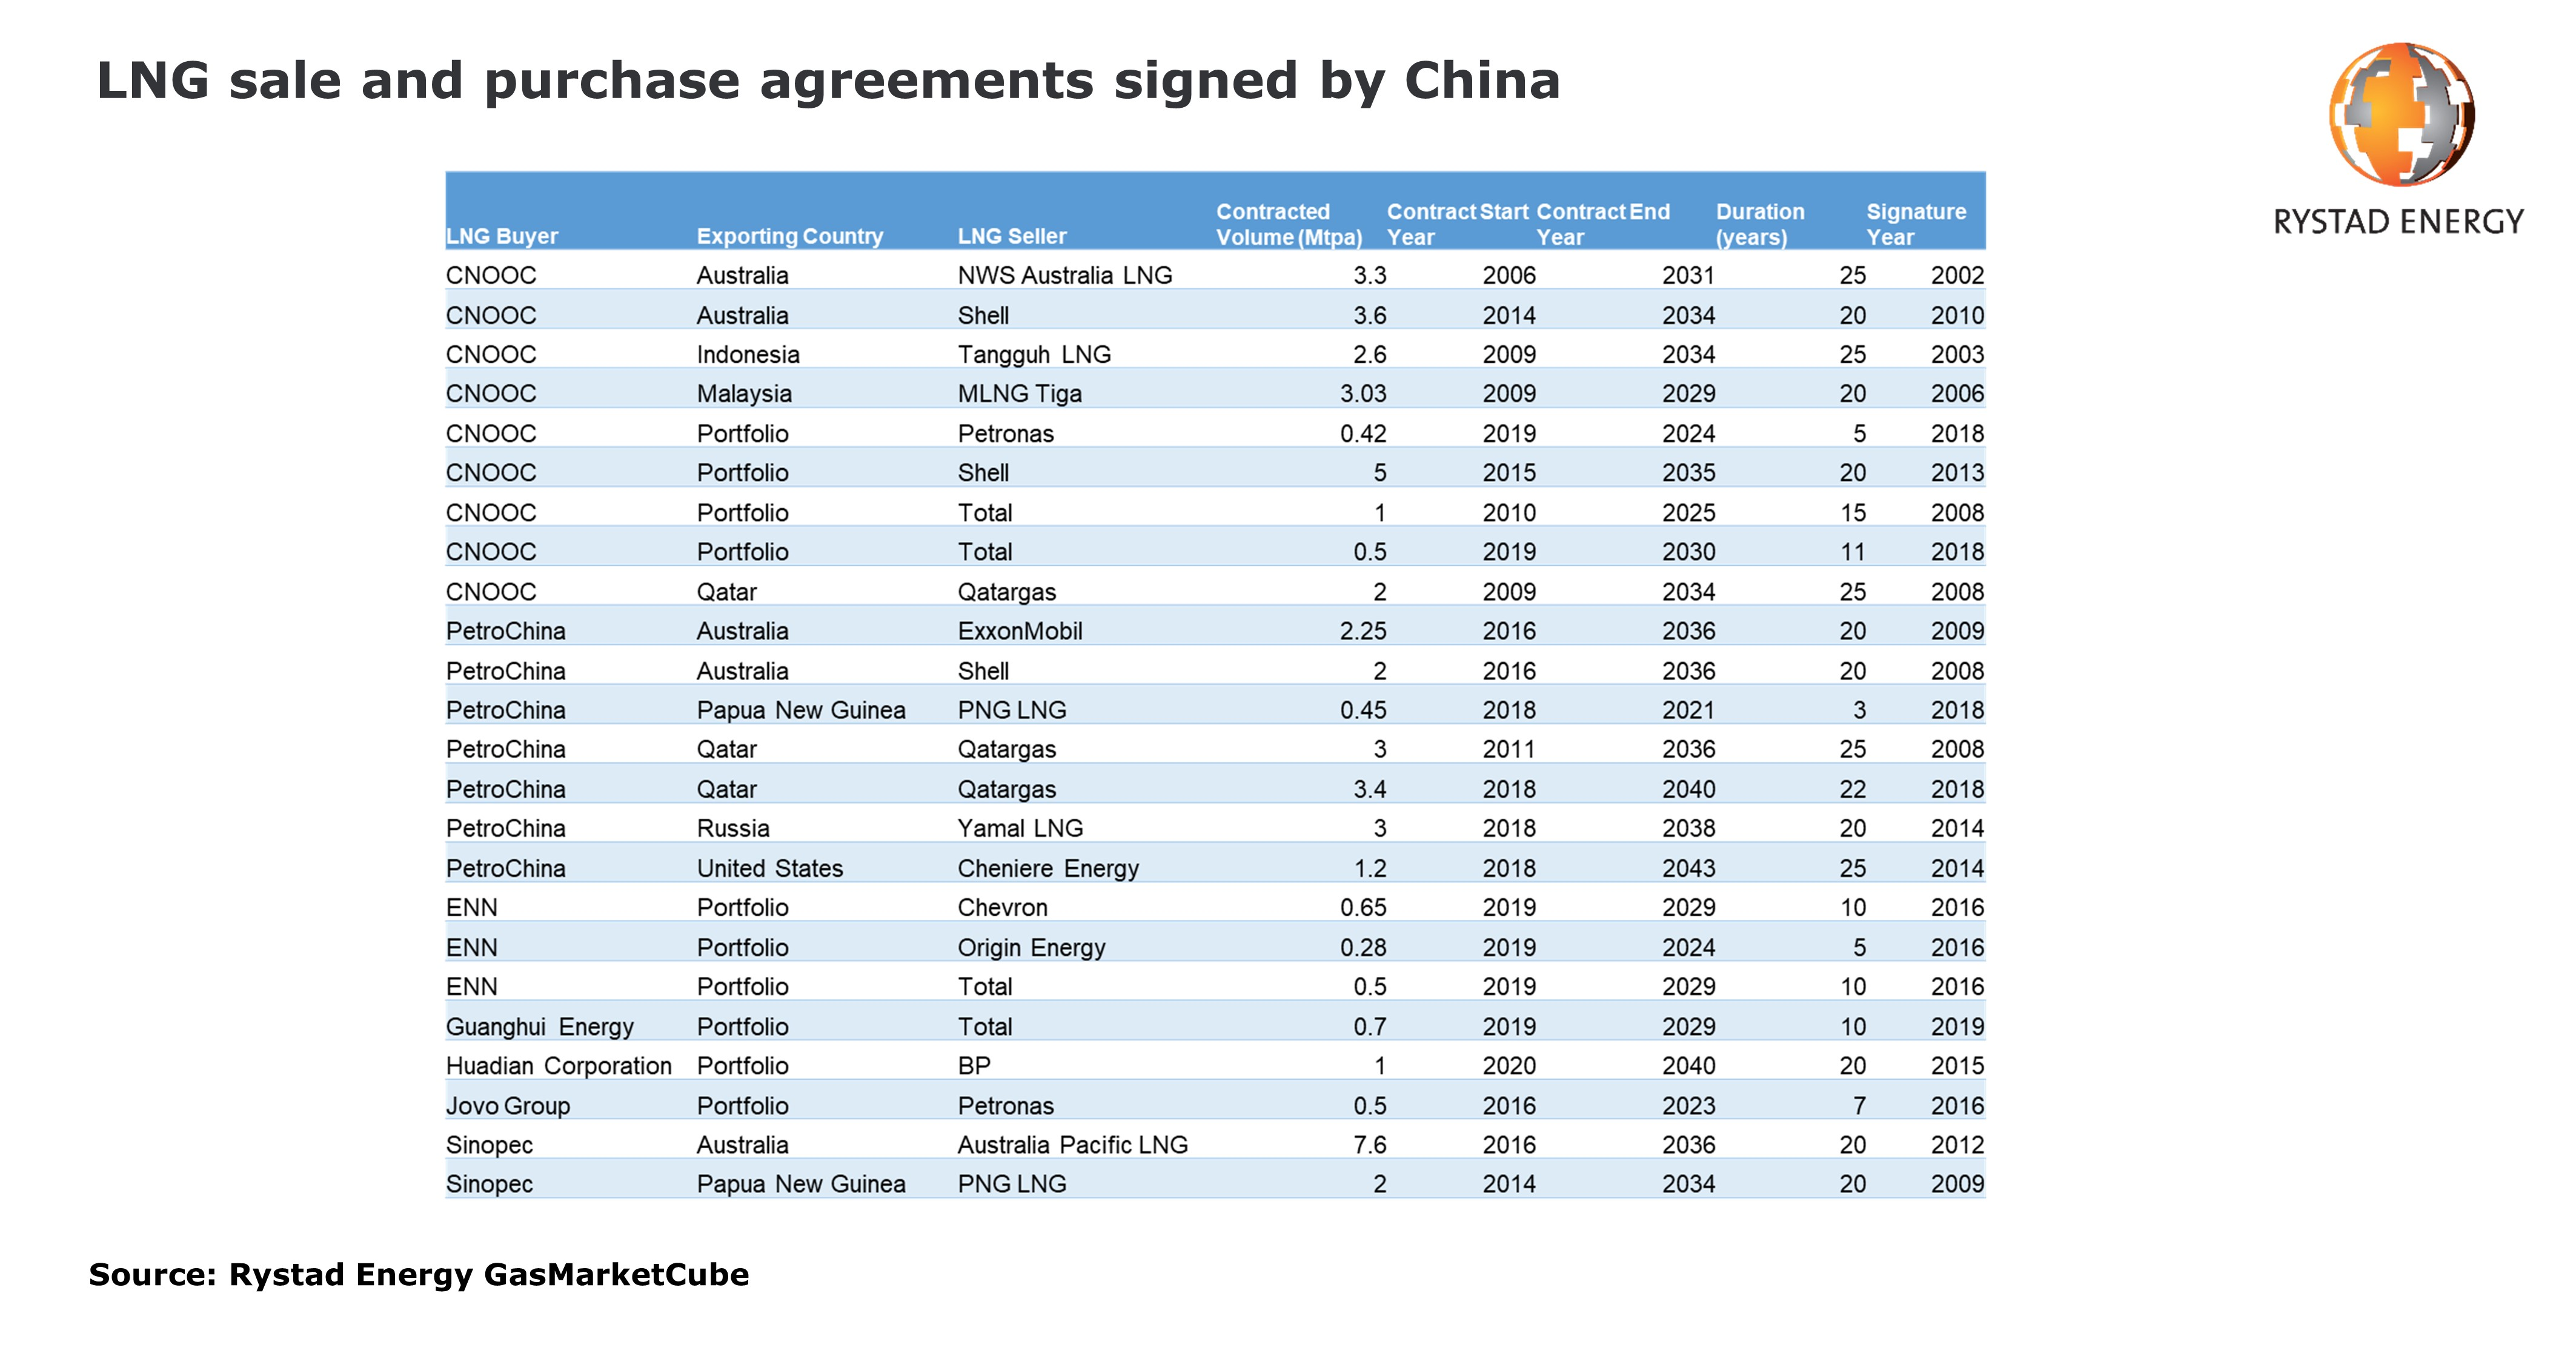 List showing LNG sale and purchase agreements signed by China